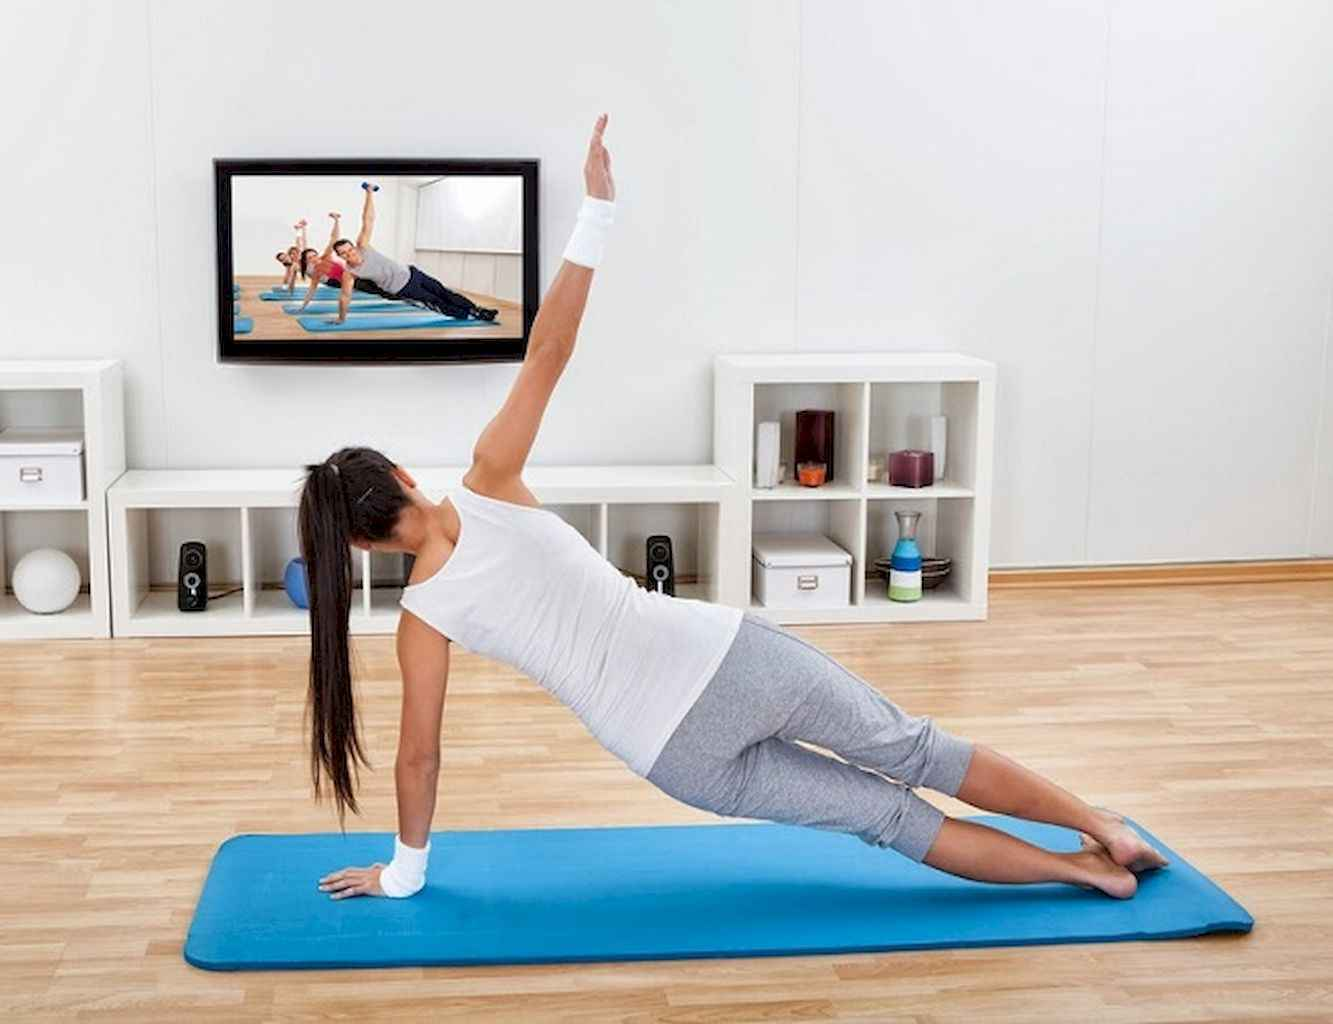 Home gym ideas small spaces 20 LivingMarch